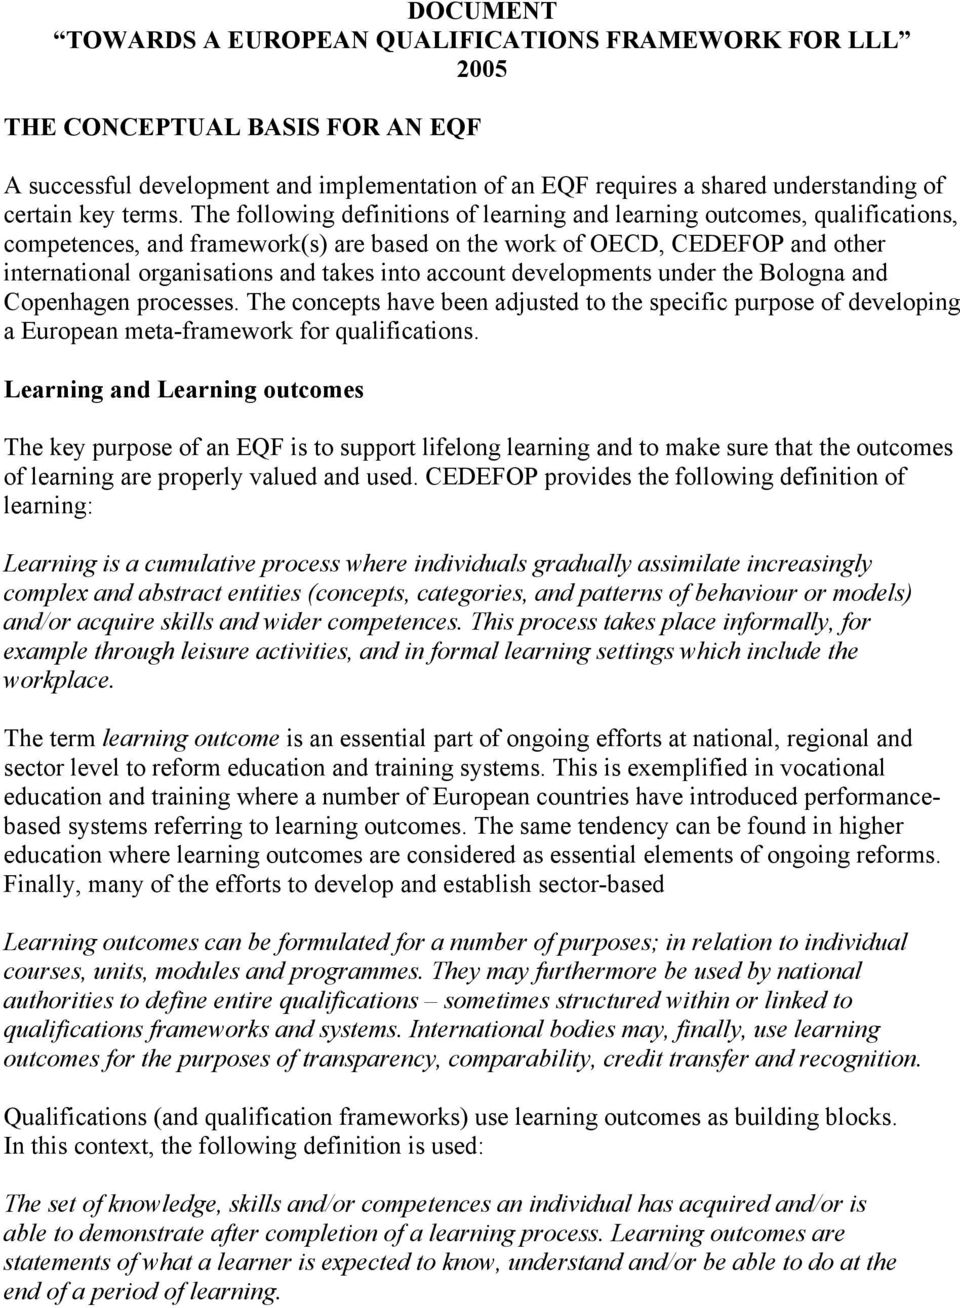 The following definitions of learning and learning outcomes, qualifications, competences, and framework(s) are based on the work of OECD, CEDEFOP and other international organisations and takes into